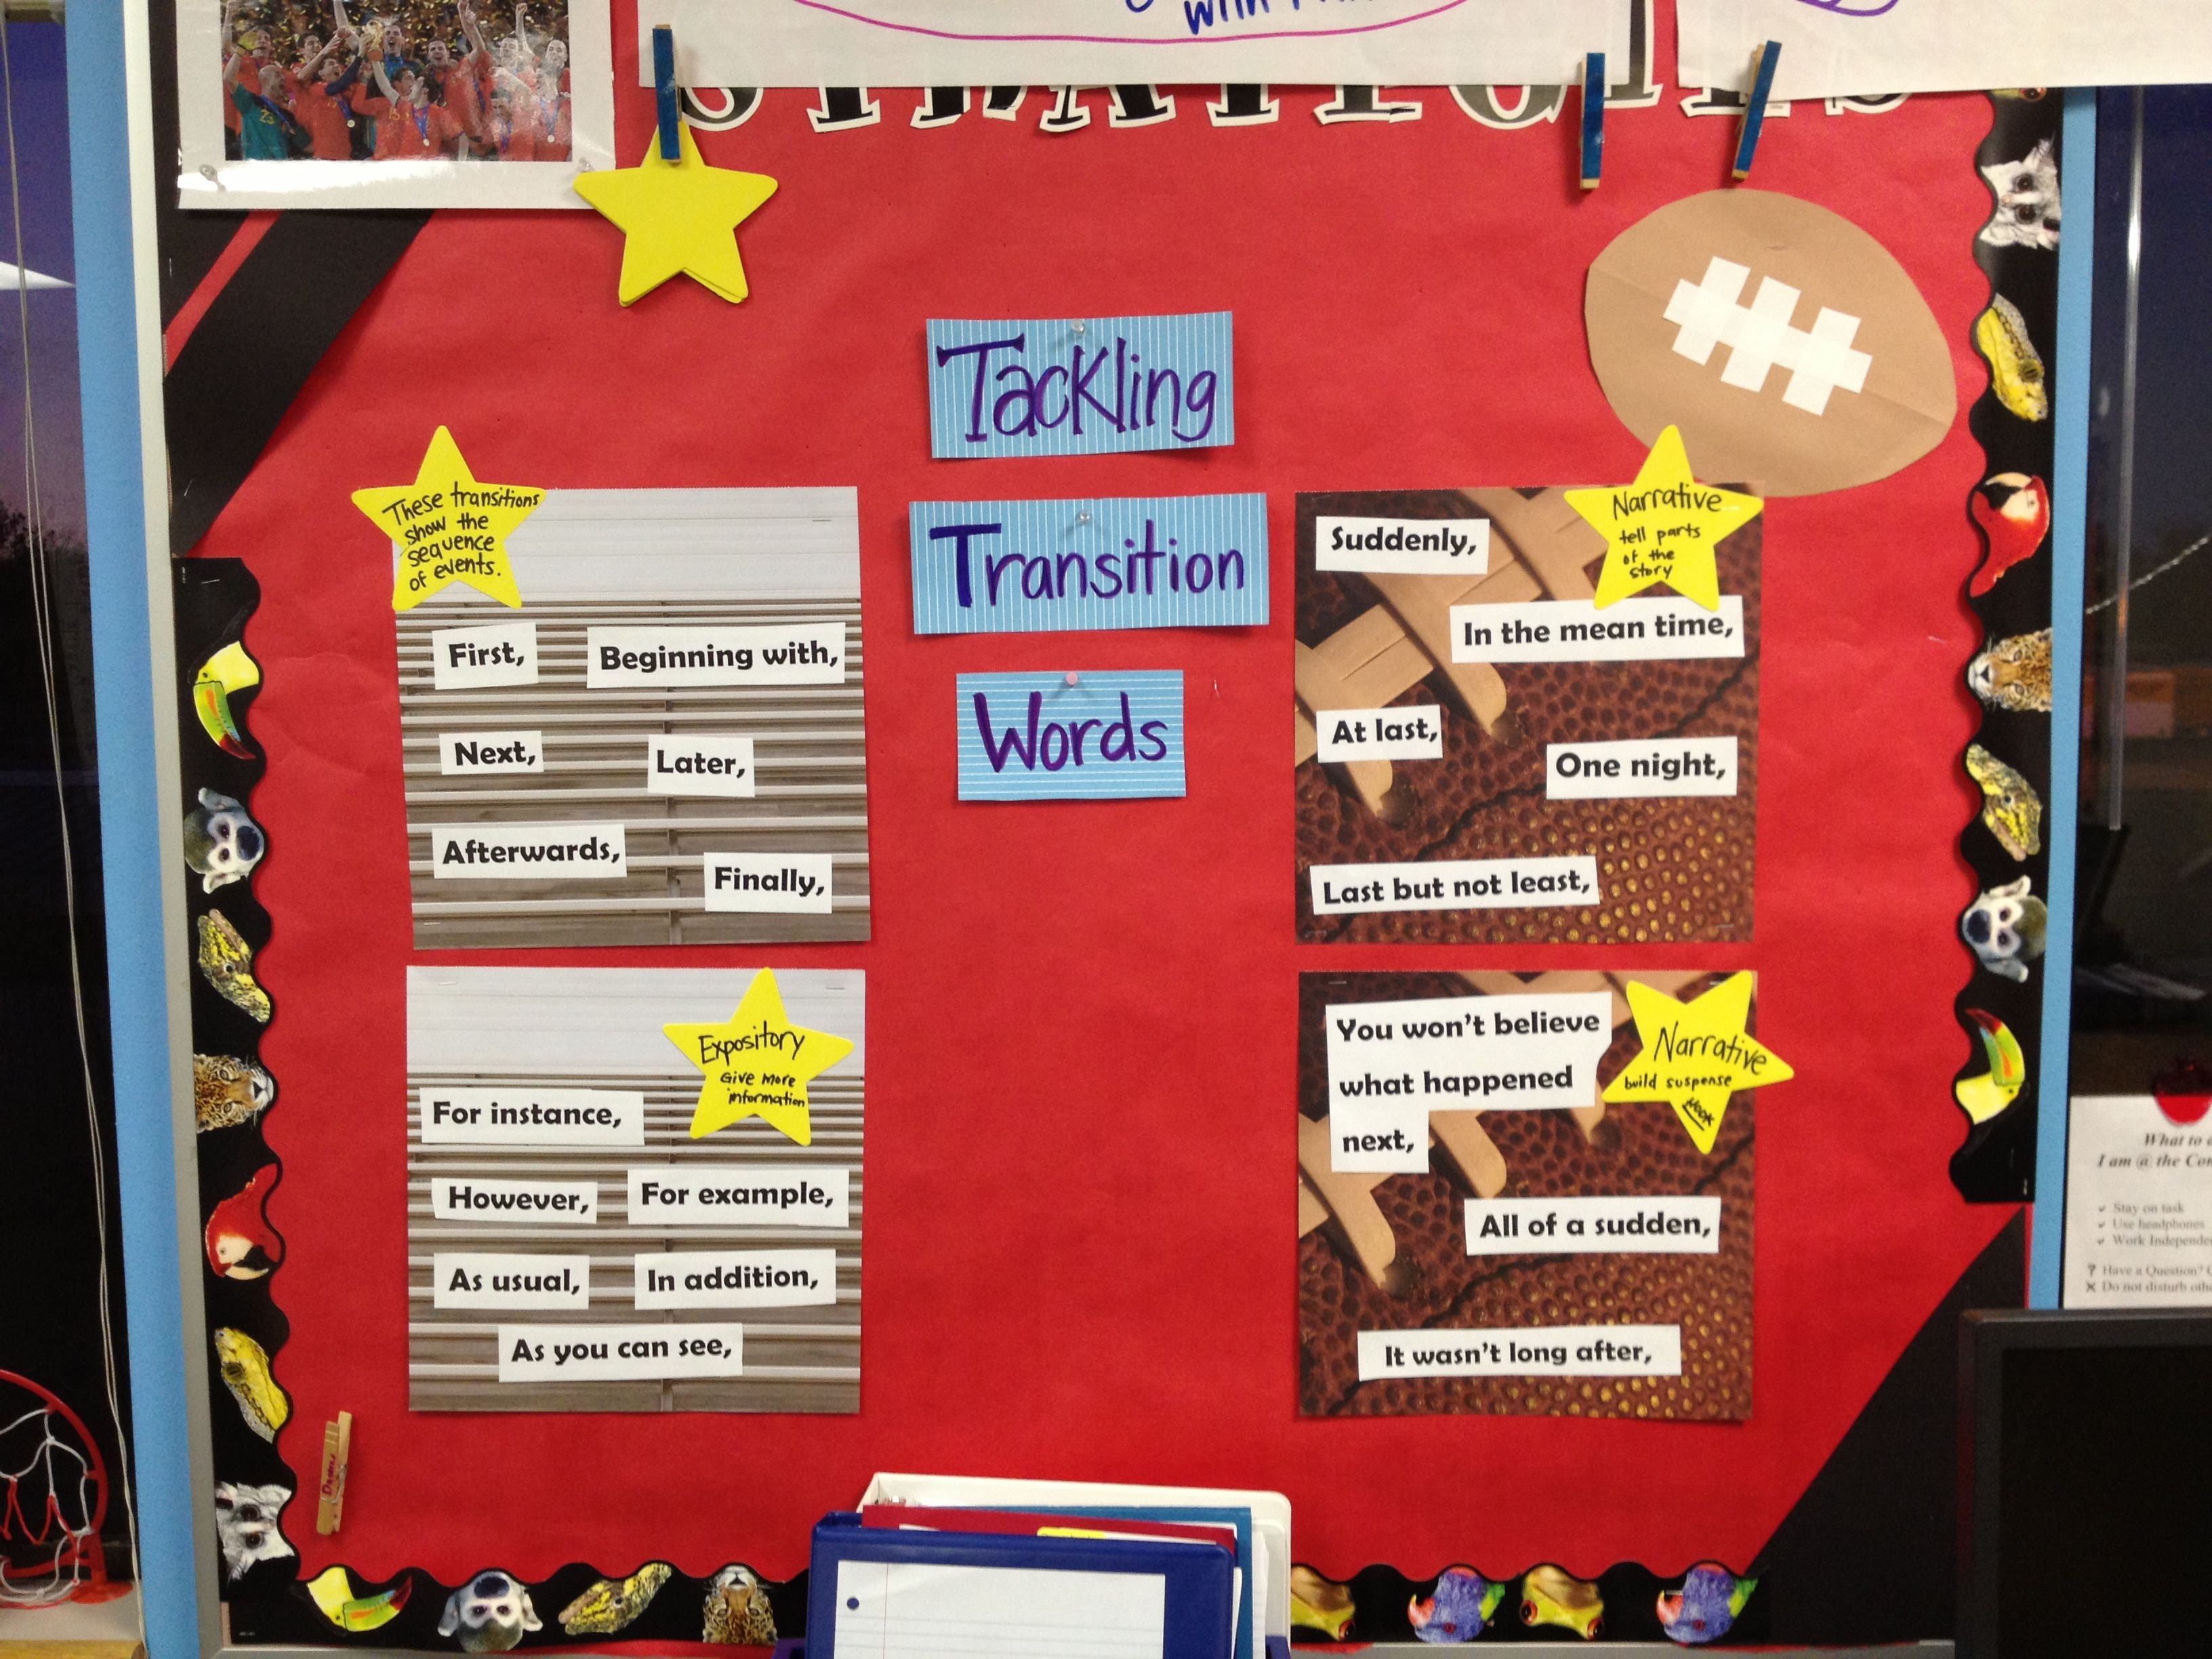 Tackling Transition Words 4th Grade Writing Expository